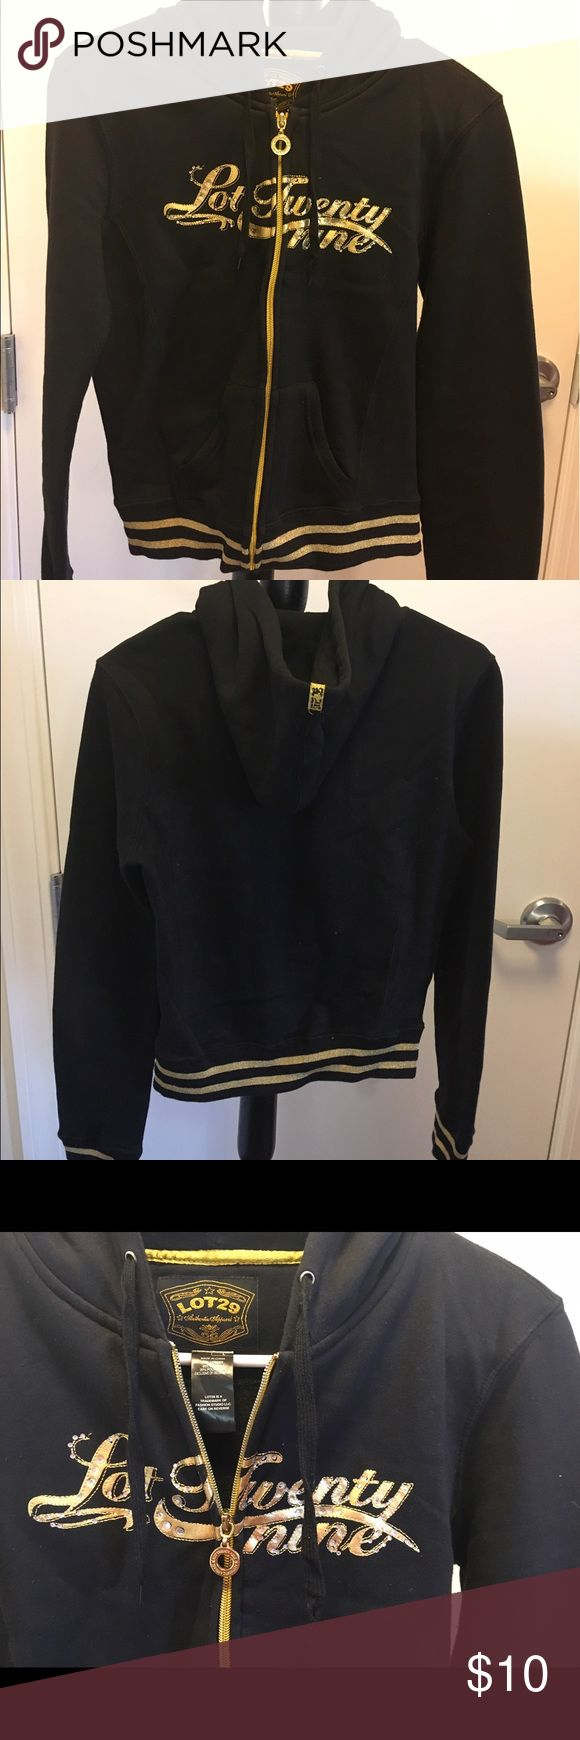 Lot 29 Black & Gold Zip Up Hoodie Lot 29 black & gold zip up hoodie. Great quality thick cotton material. Rhinestones on front logo. Juniors size large Tops Sweatshirts & Hoodies